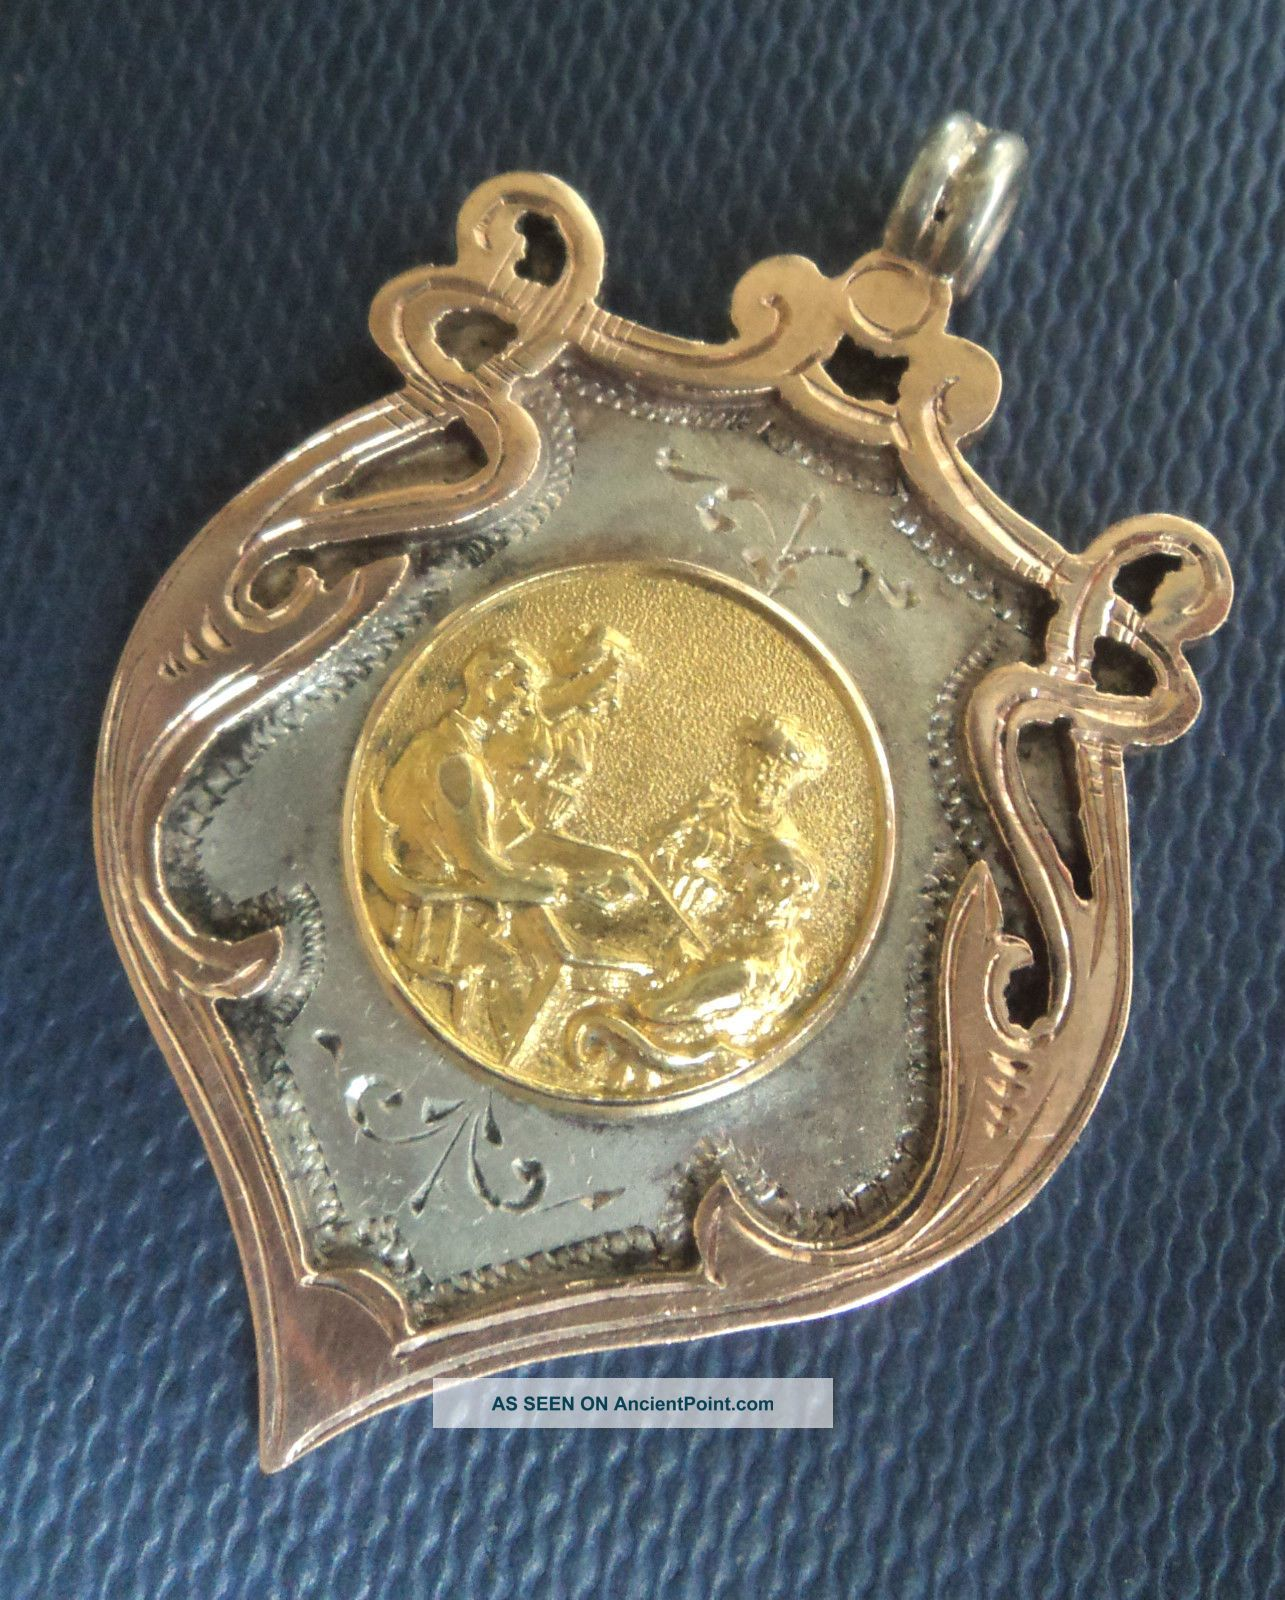 Vintage Stg.  Silver & Gold Fob Medal 1939 Whist / Bridge / Poker / Playing Cards Pocket Watches/Chains/Fobs photo